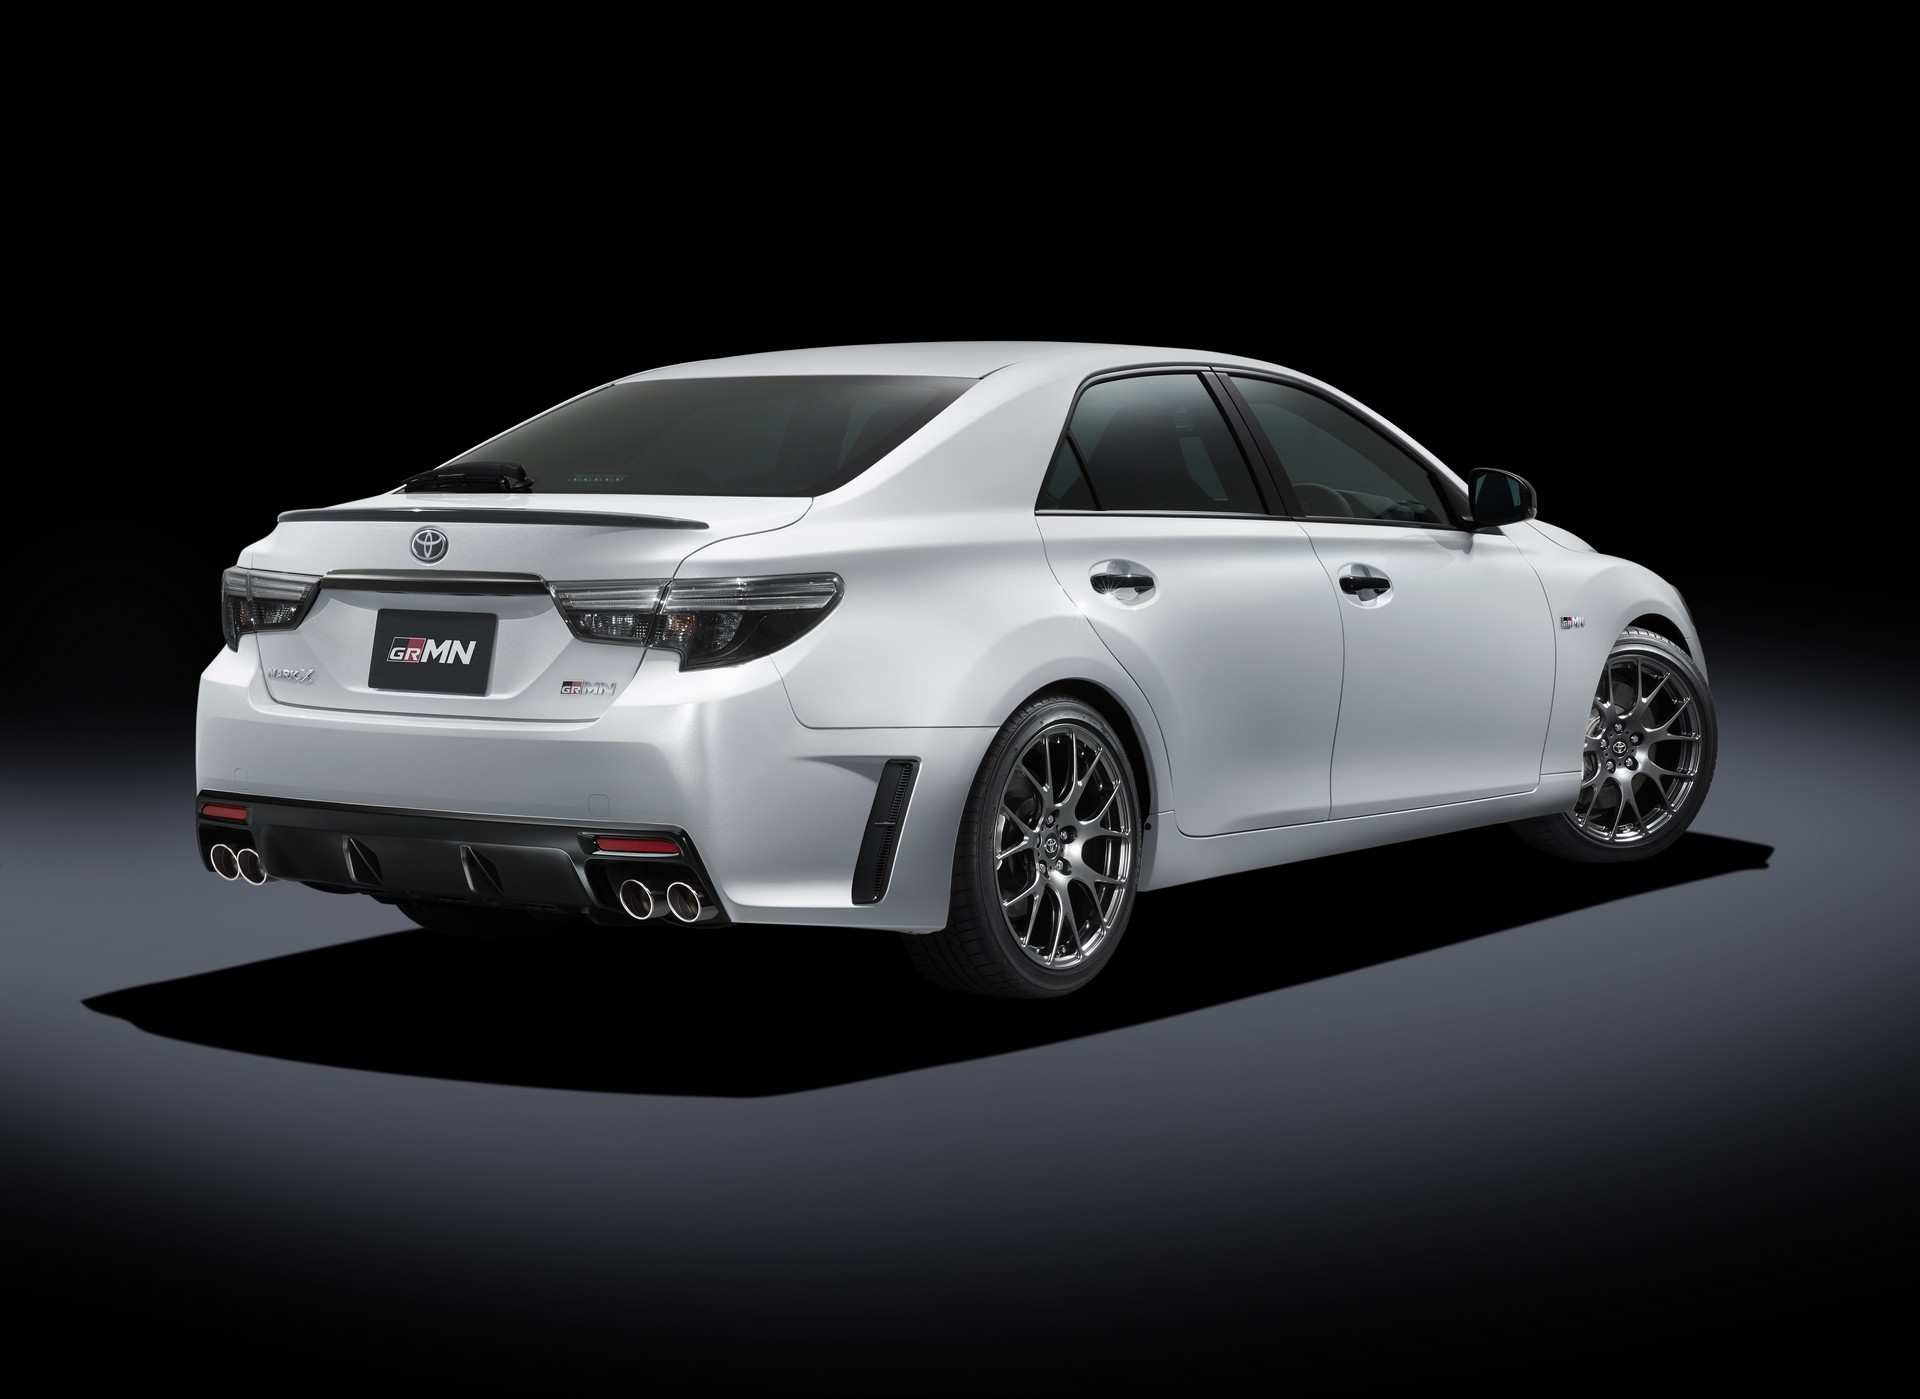 80 Concept of Toyota Mark X 2020 Picture with Toyota Mark X 2020